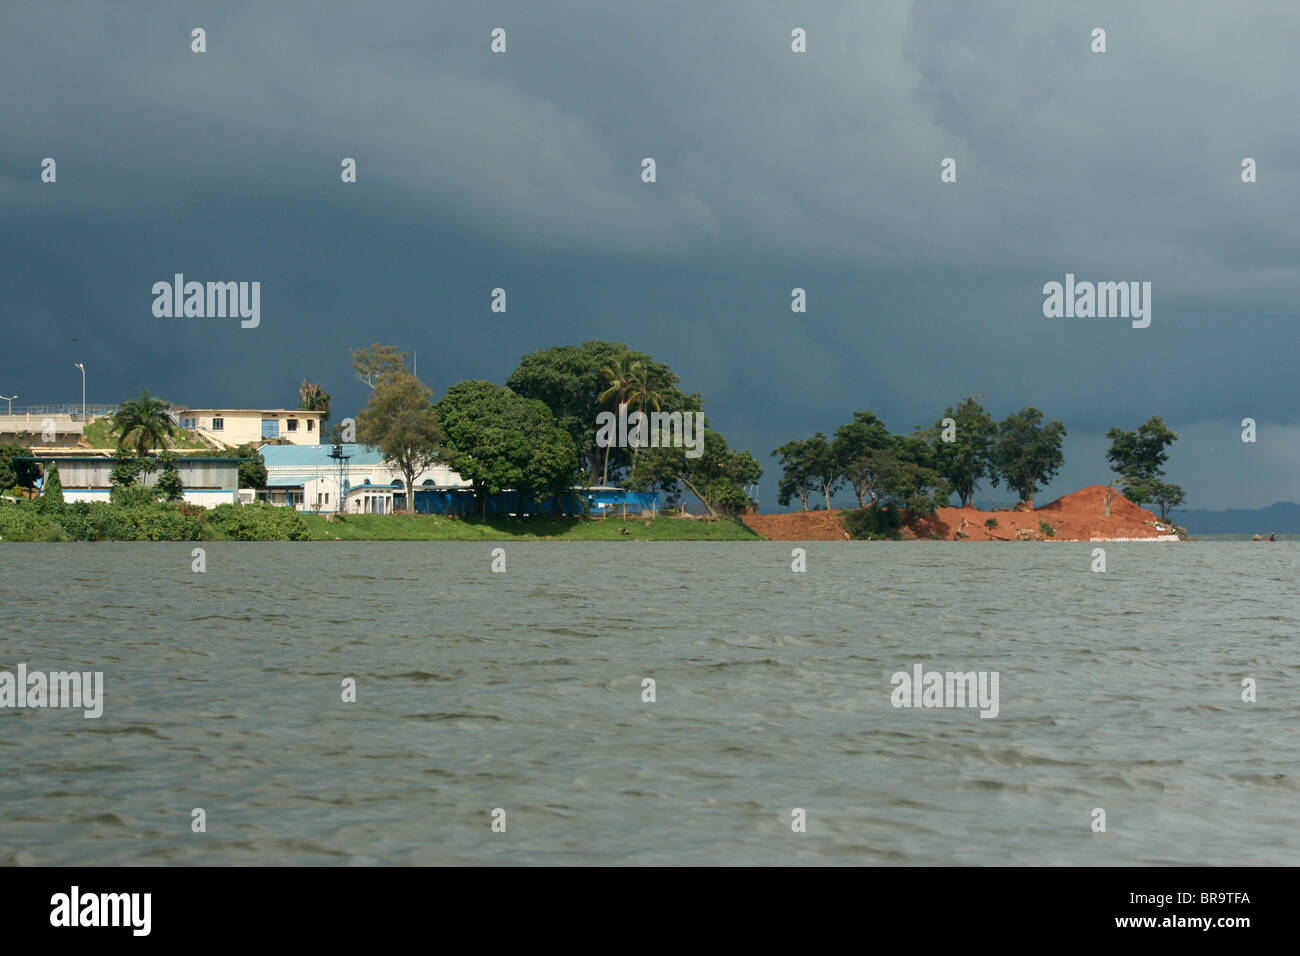 View of the Ggaba water works on Lake Victoria that supply Kampala with drinking water, image captured with a rain - Stock Image